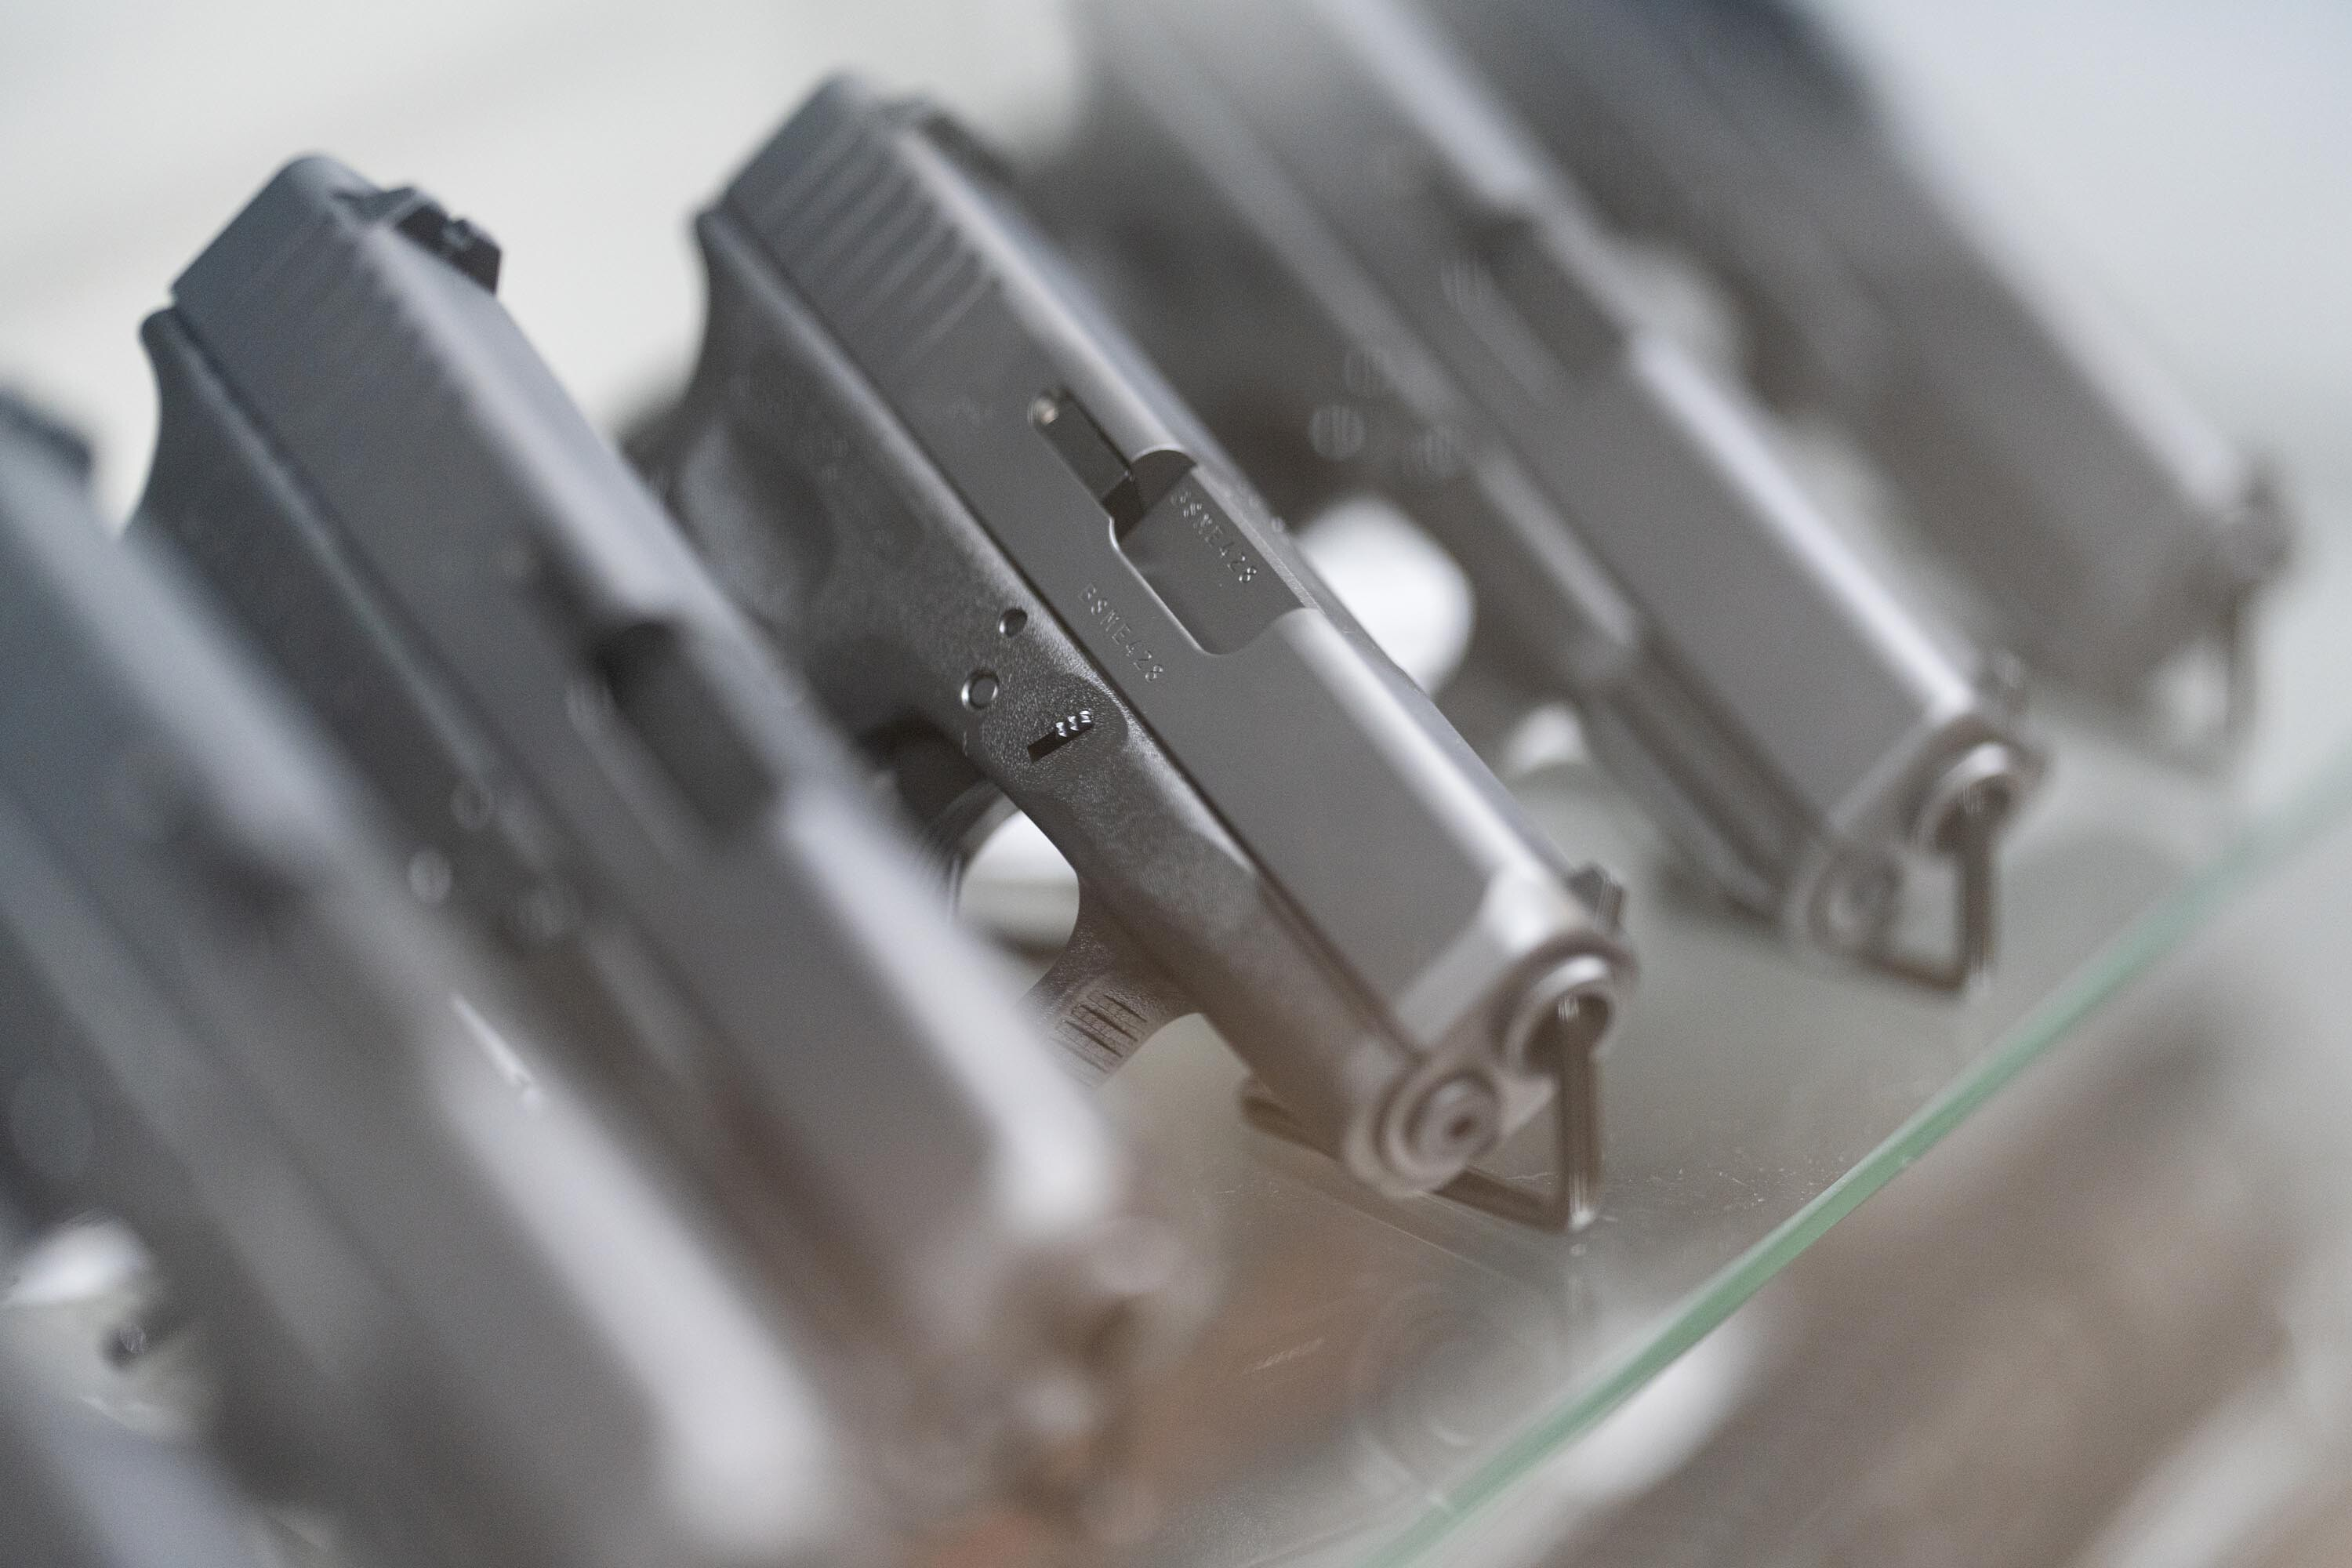 Handgun sale ban to under 21-year-olds is unconstitutional, appeals court says